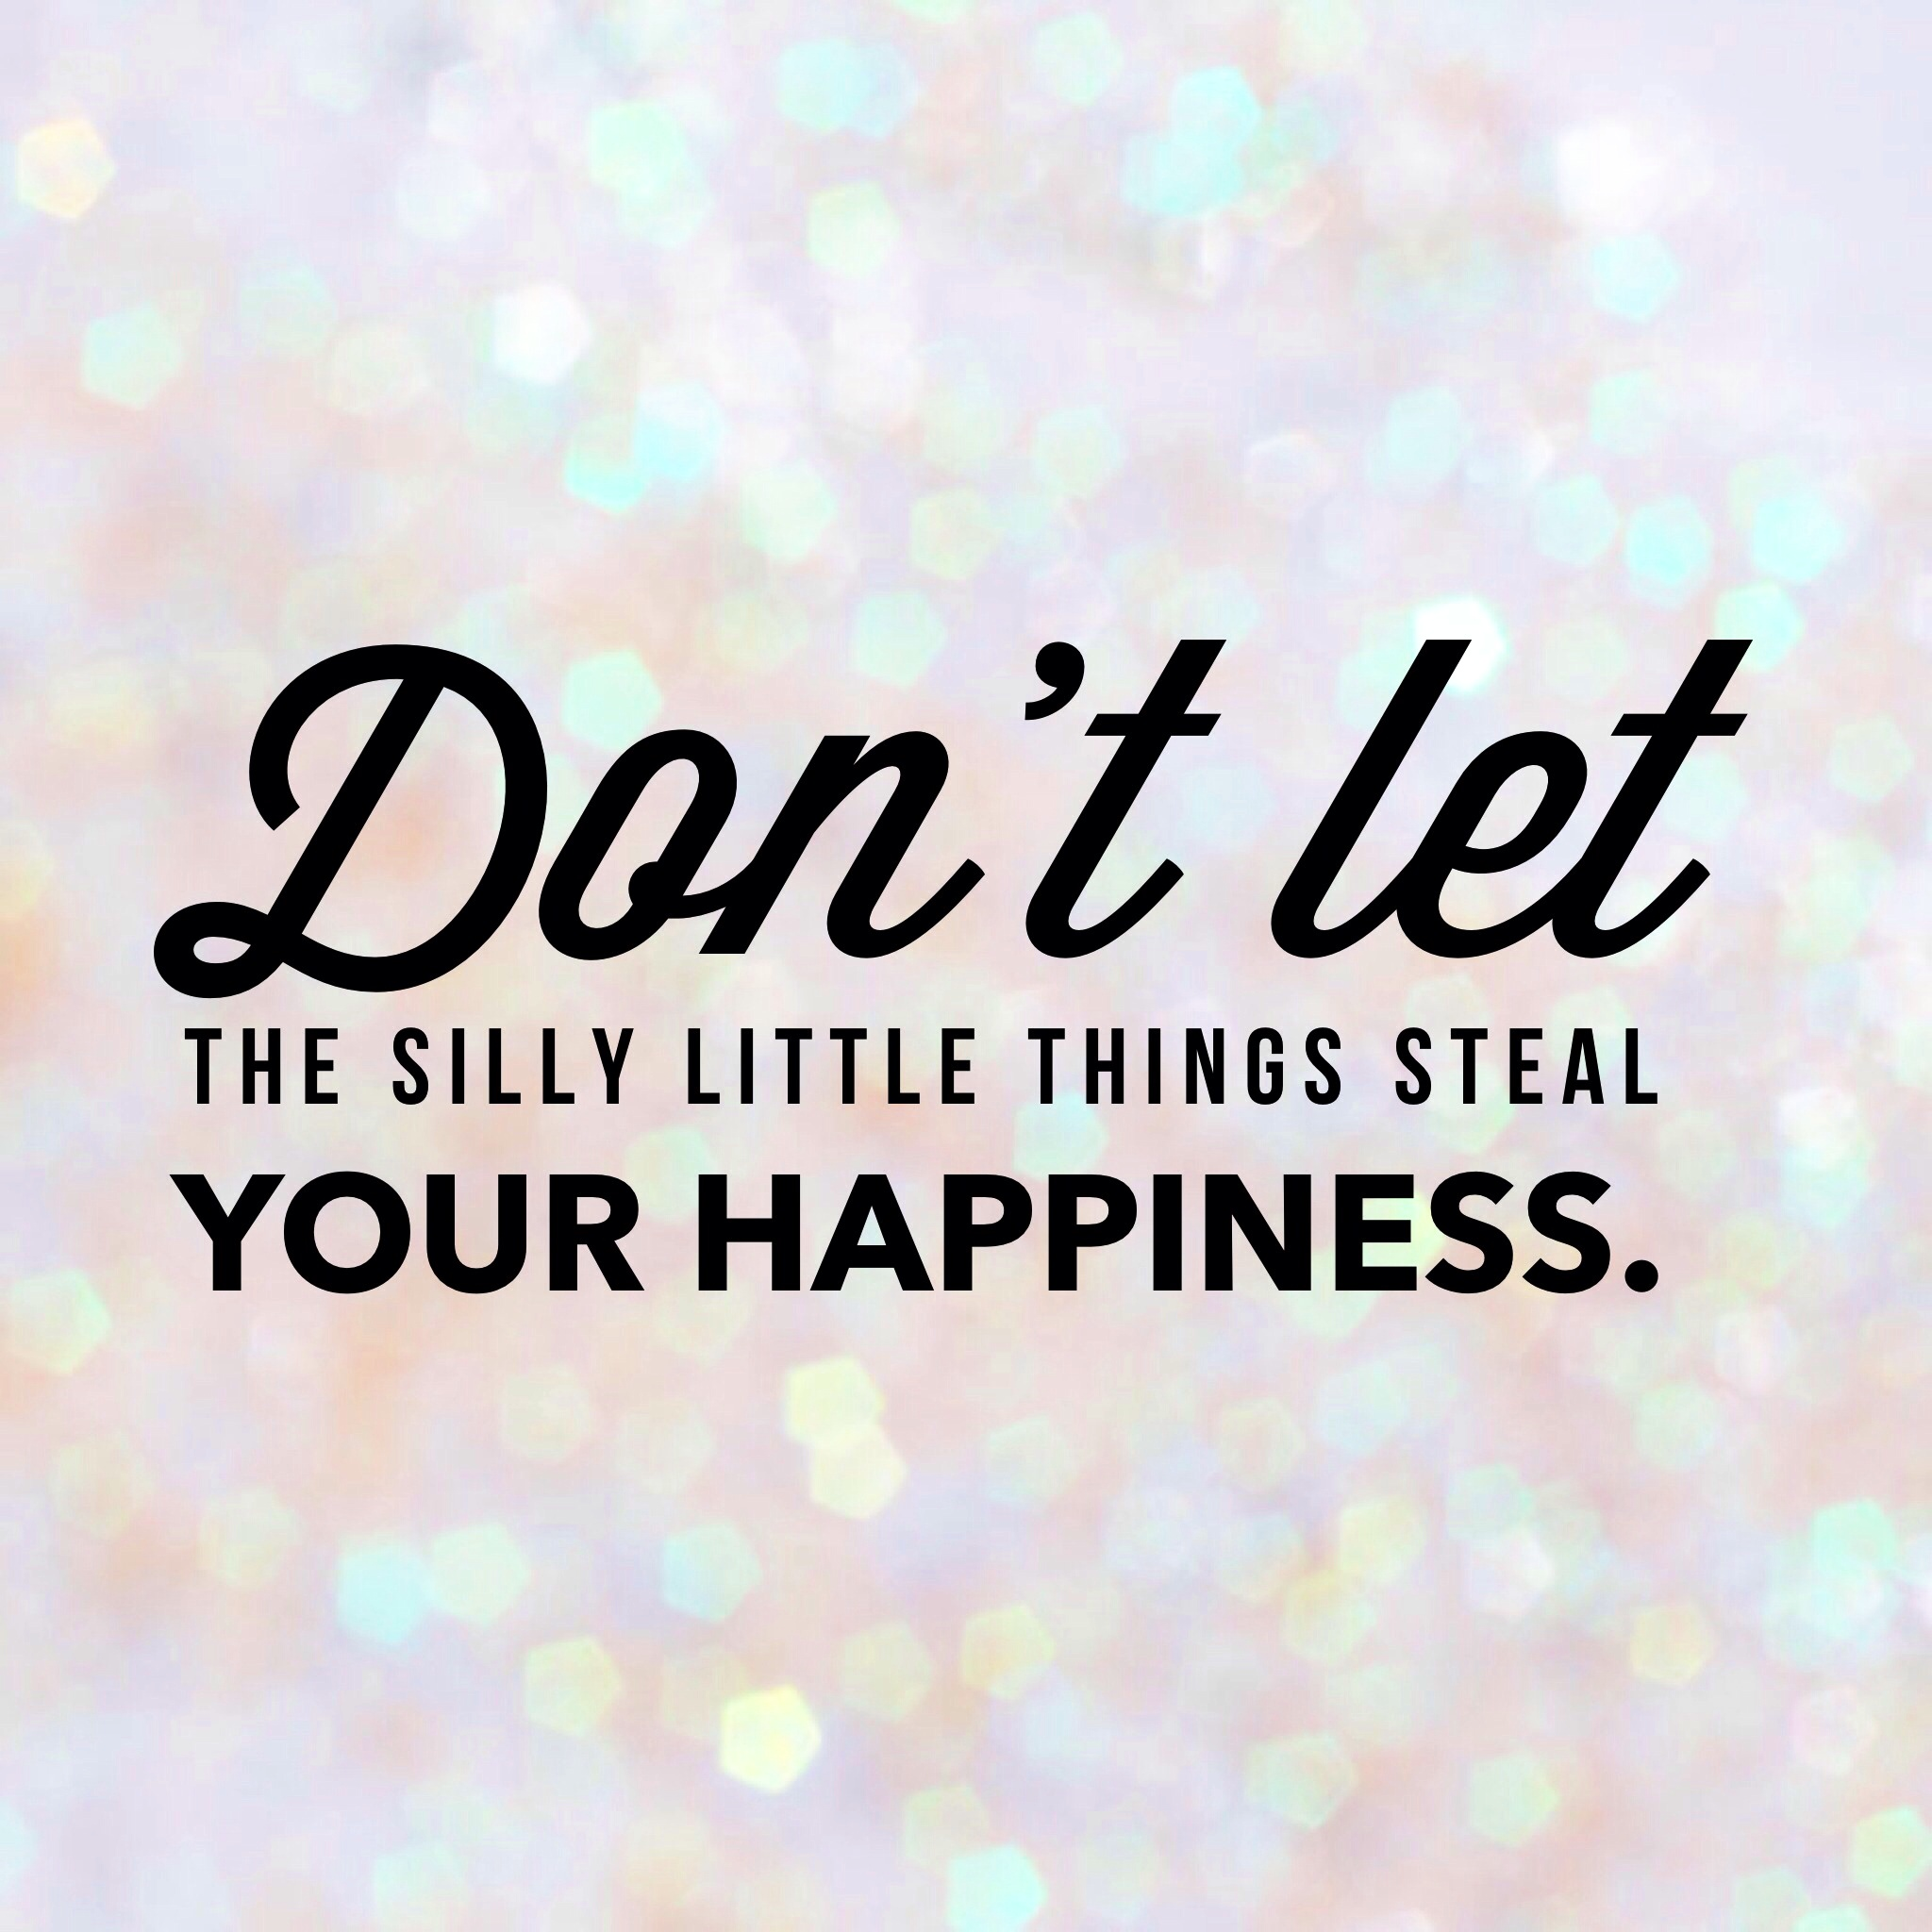 8 Ways to Stop the Silly Things from Stealing Your Happiness